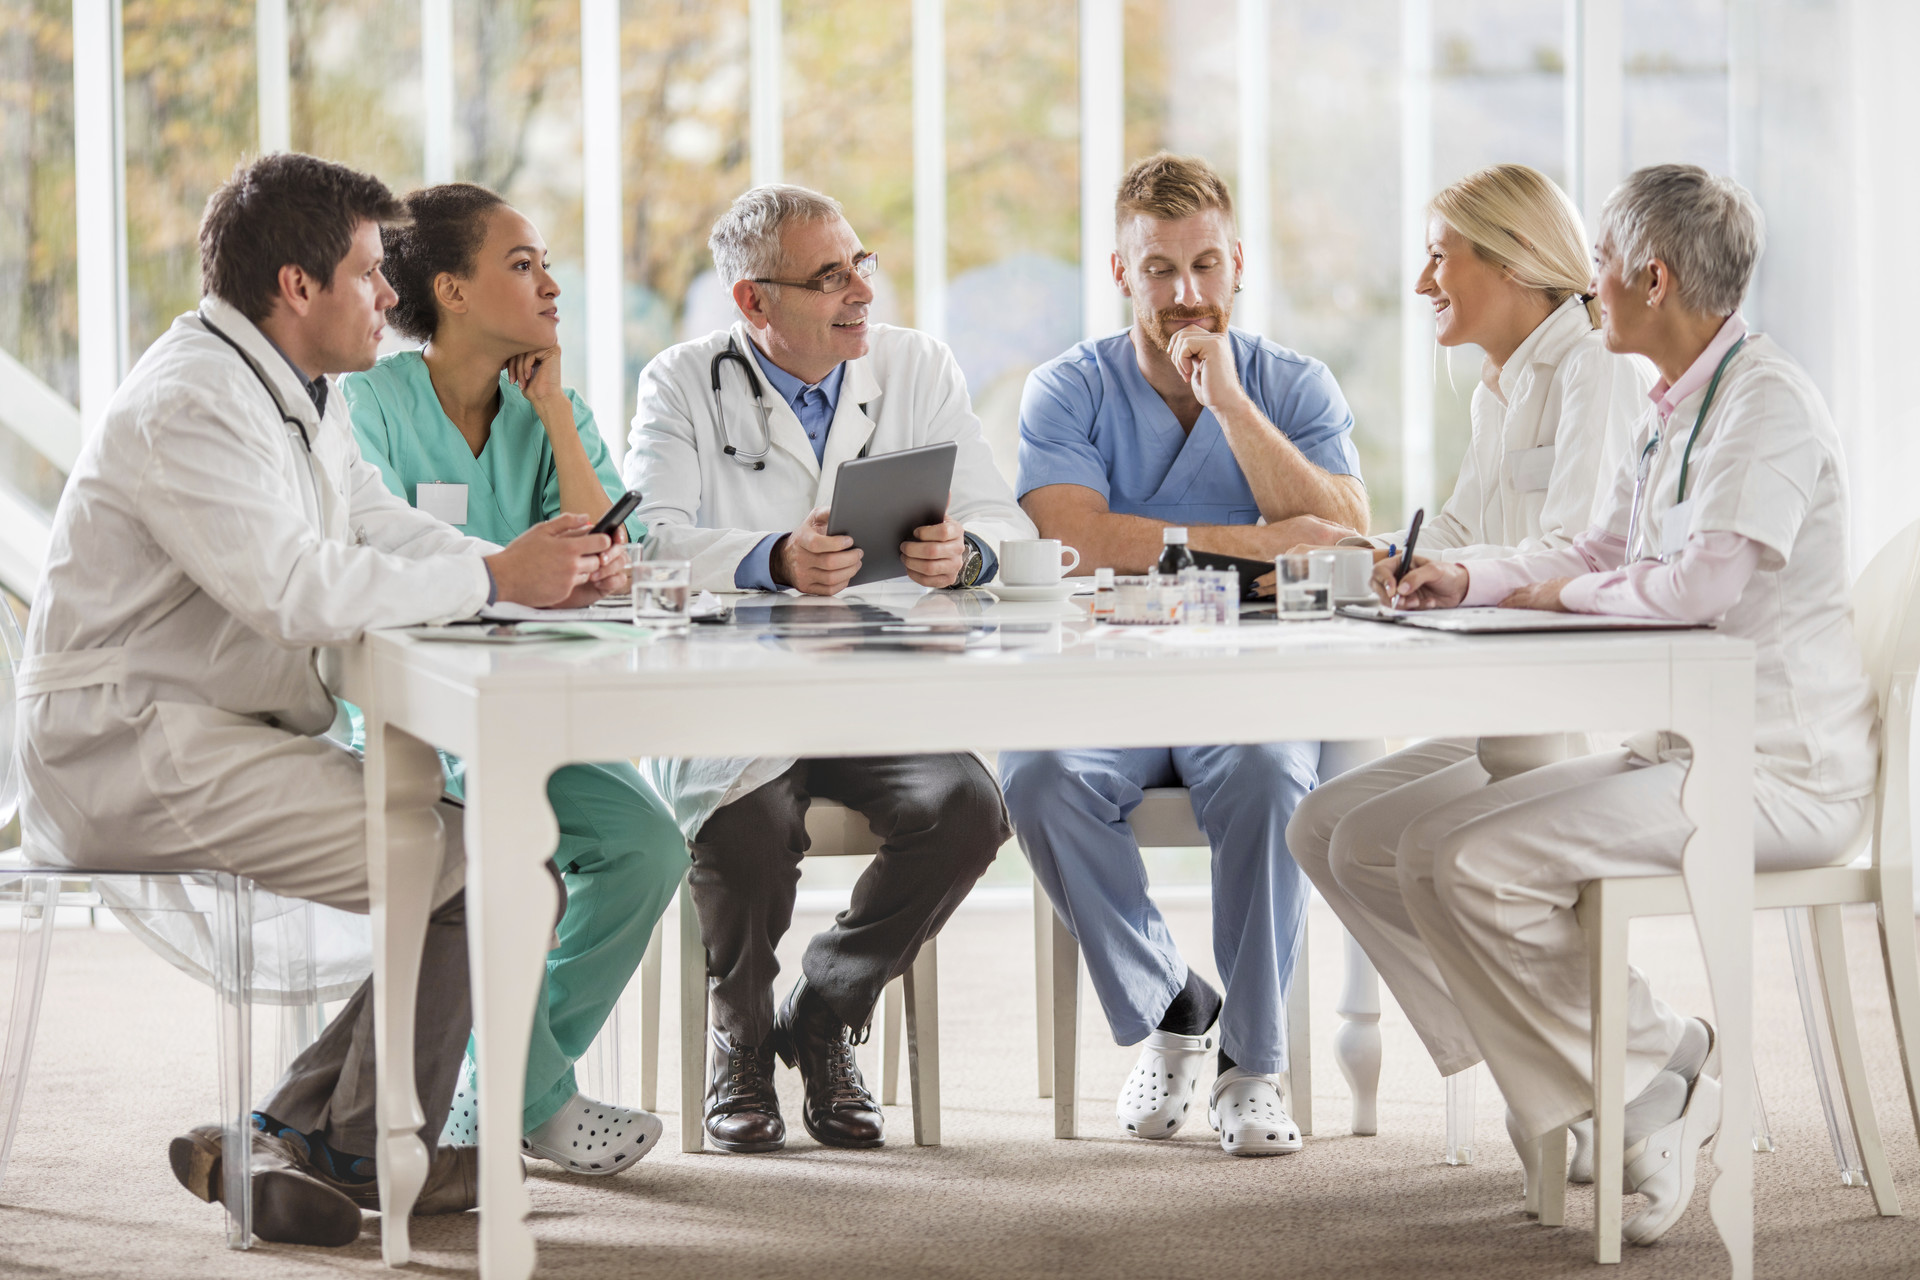 Physician and Doctors are in a Meeting